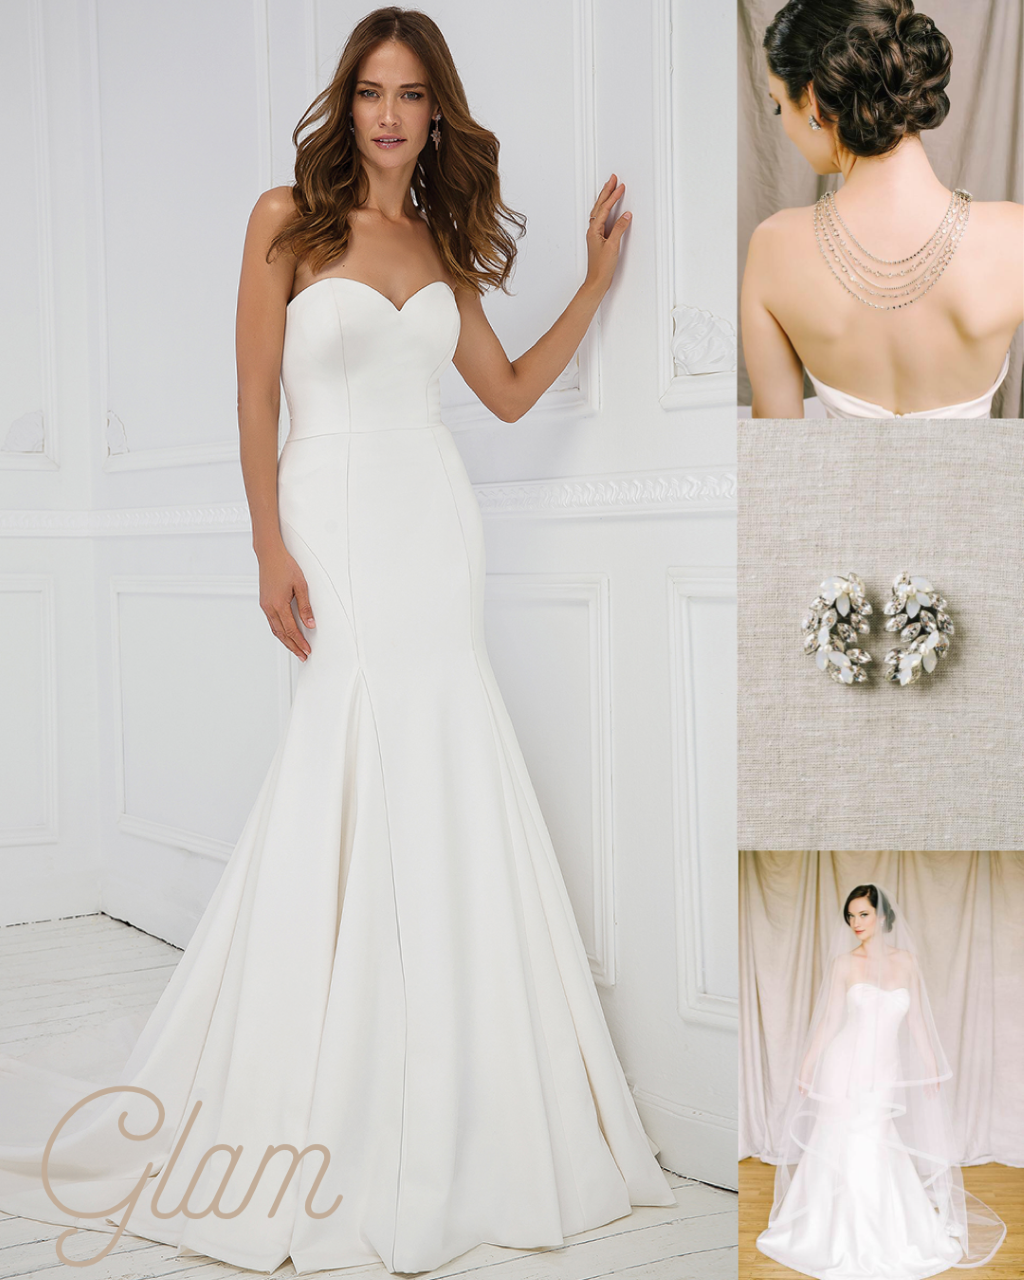 Cassidy By Maggie Sottero Wedding Dresses And Accessories Wedding Dress Accessories Beautiful Wedding Dresses Dresses [ 1504 x 1128 Pixel ]